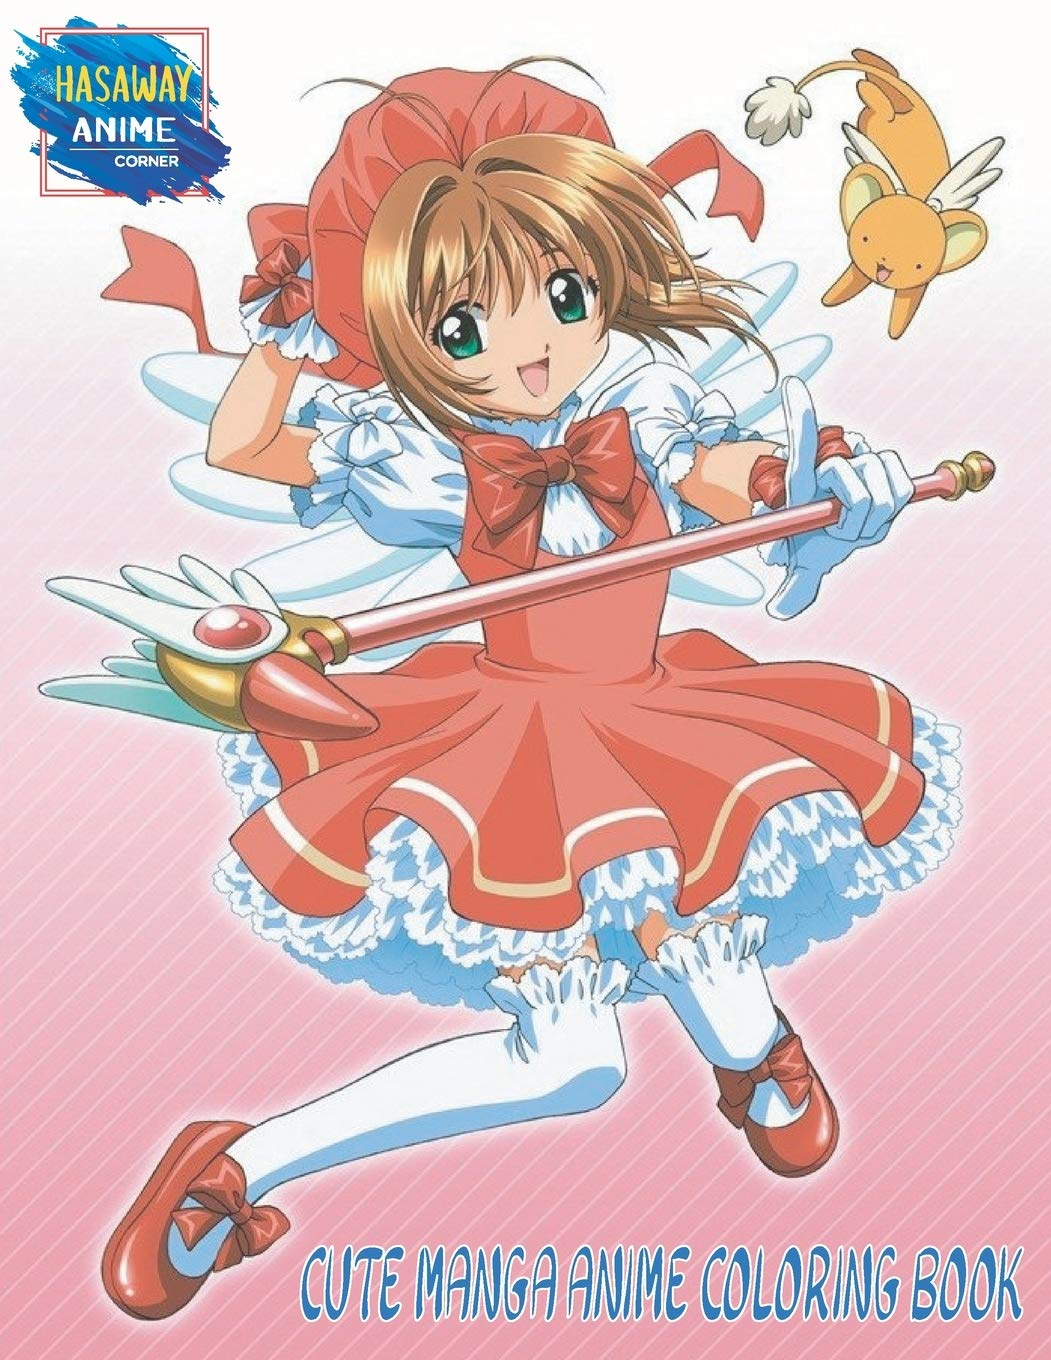 Cute Manga Anime Coloring Book  Beautiful Withches Fairy Magic Fantasy Kawaii School Girls Fun Female Japanese Cartoons And Relaxing Coloring Book ... And Kids Vol 2  Hasaway Anime Corner Band 2